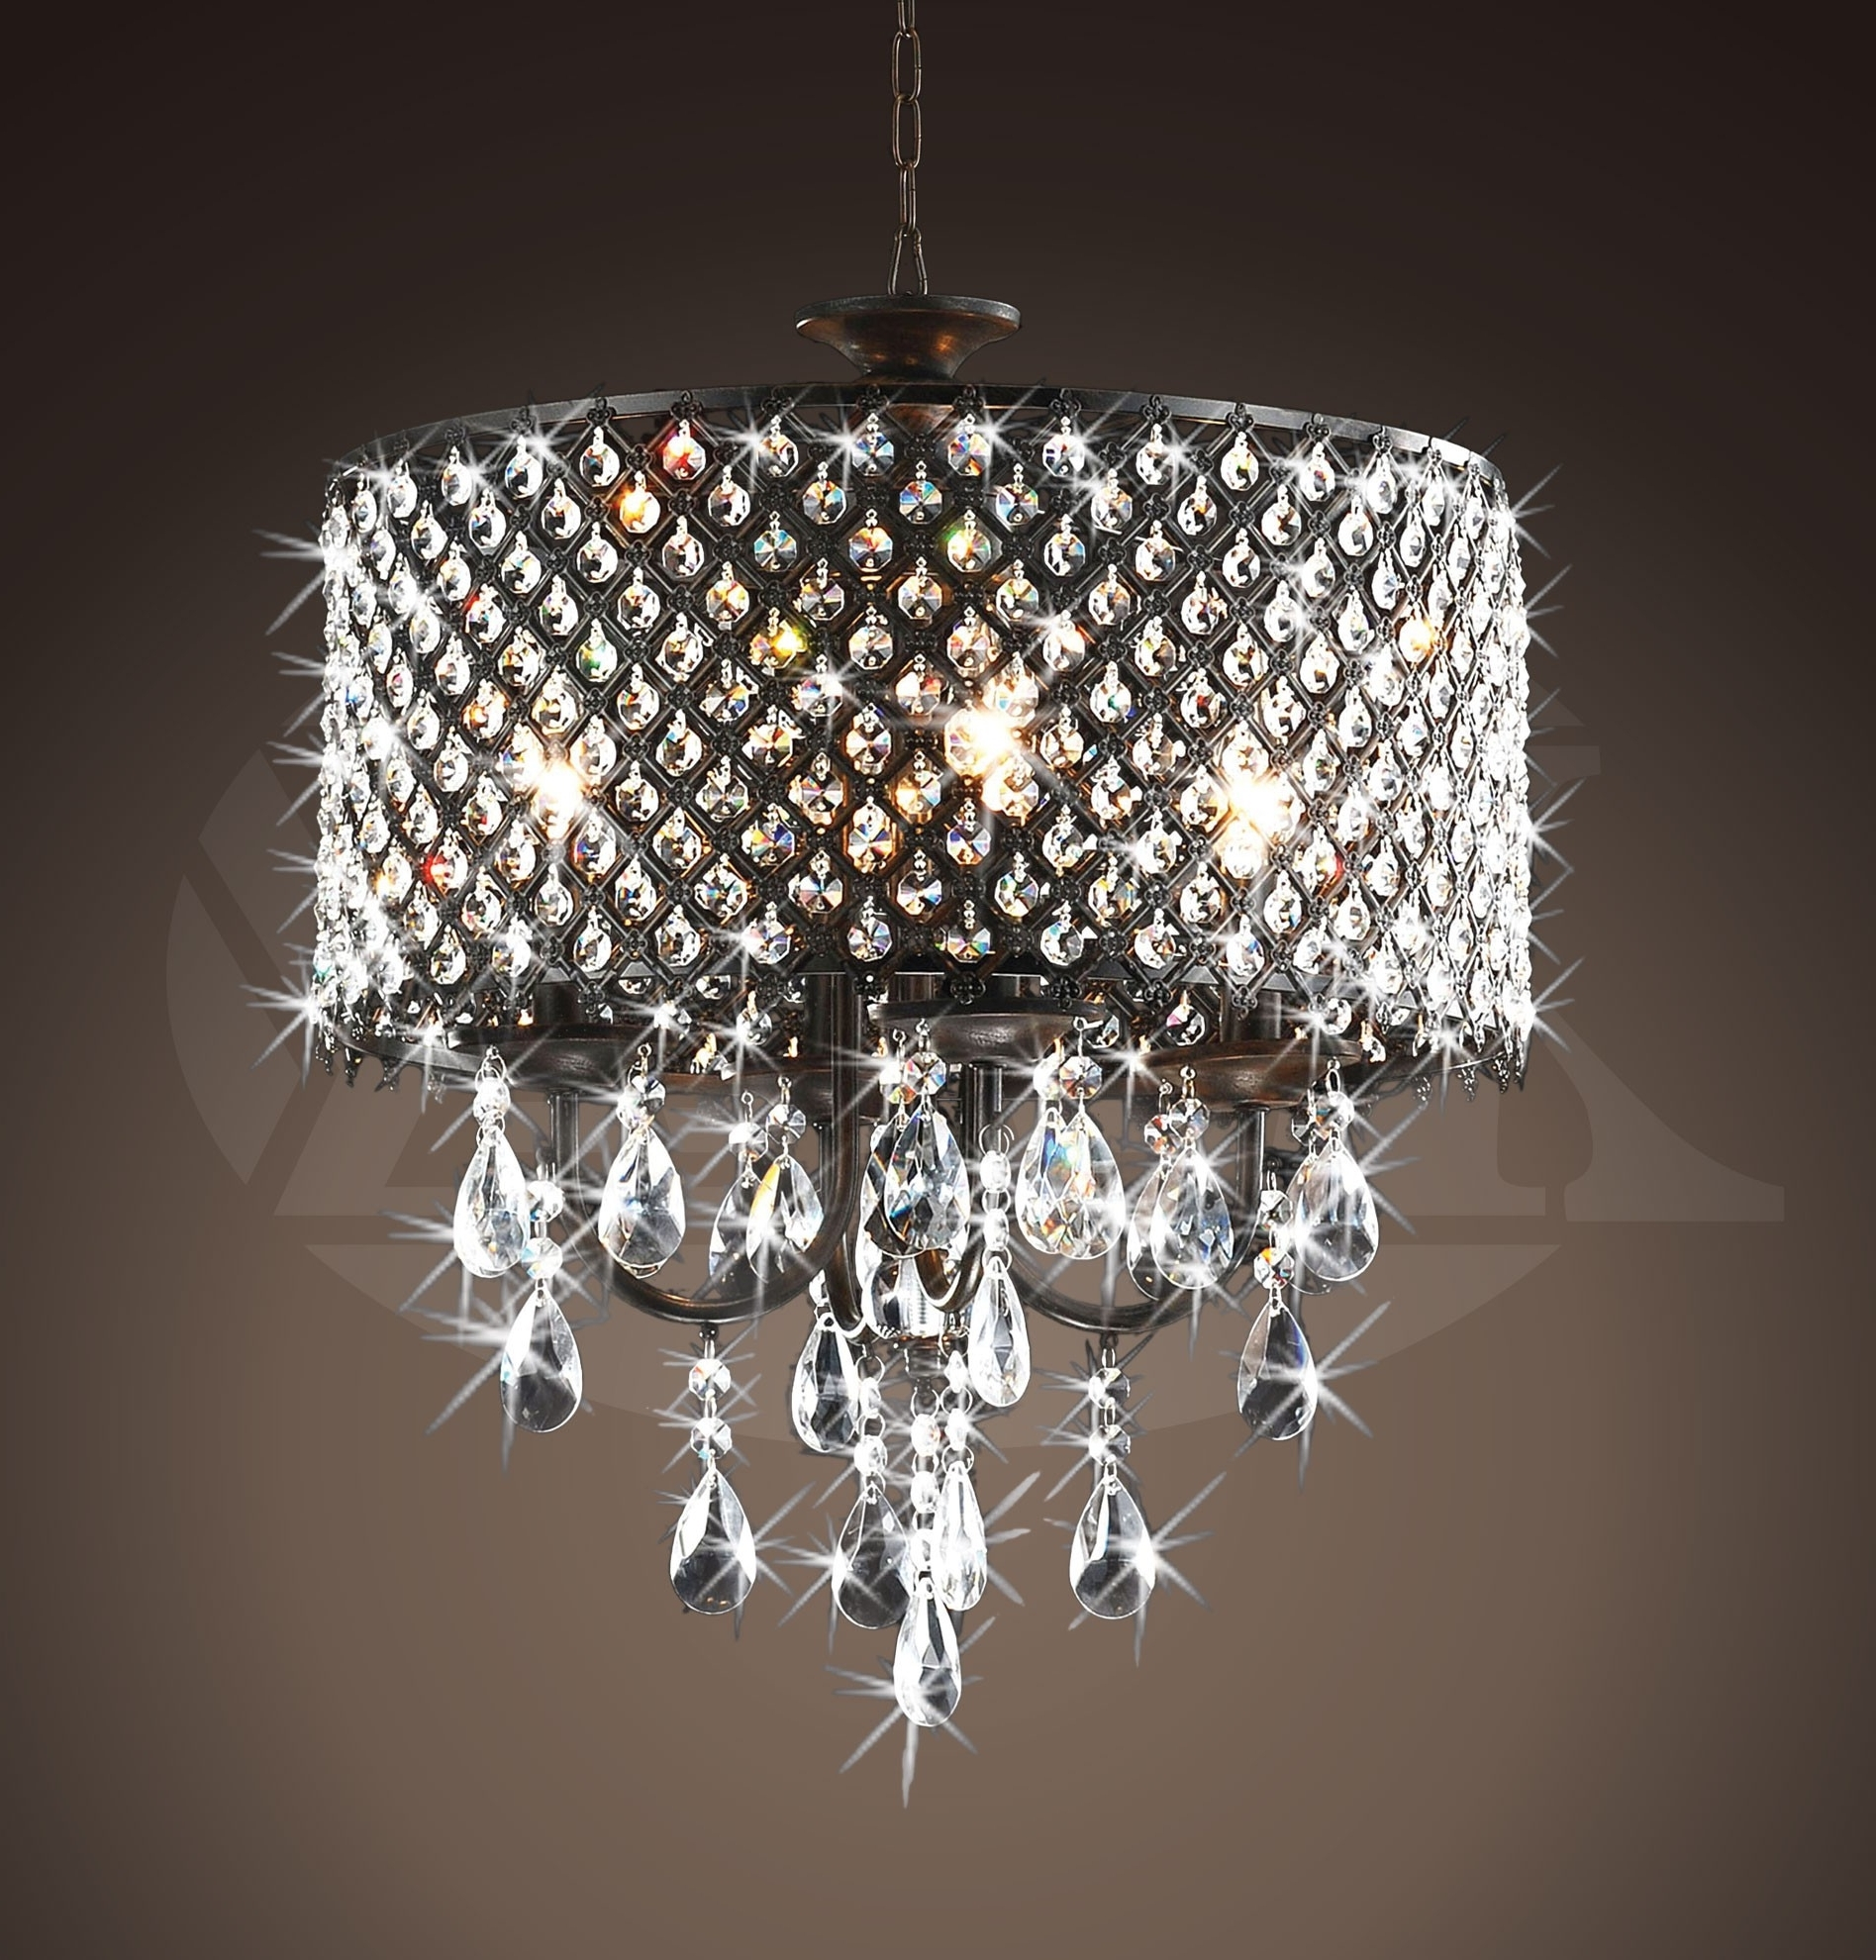 Newest Brass And Crystal Chandelier In Rachelle 4 Light Round Antique Bronze Brass Crystal Chandelier (View 14 of 20)